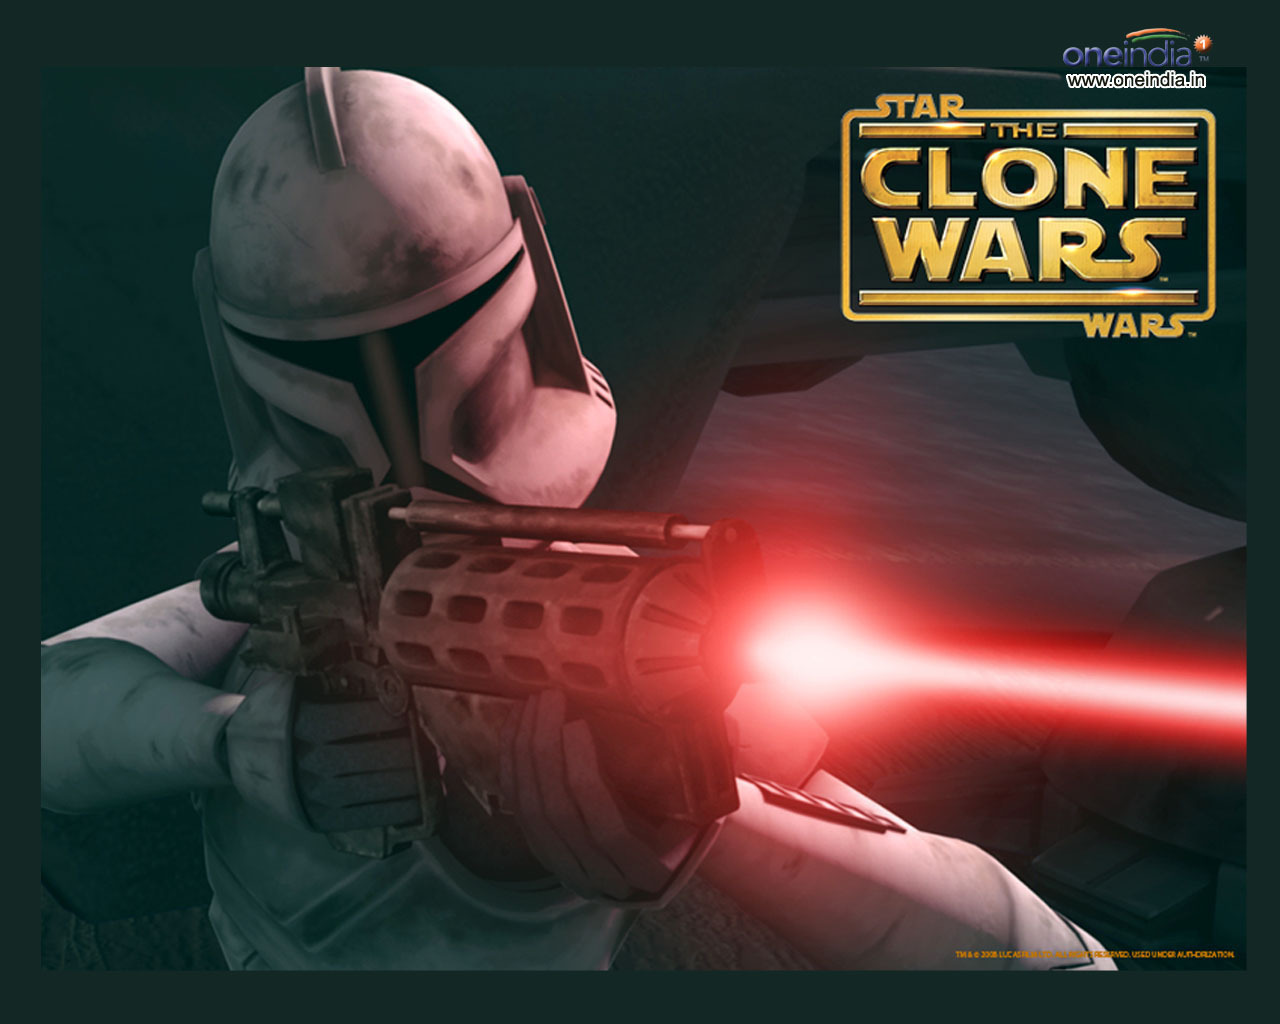 Clon trooper